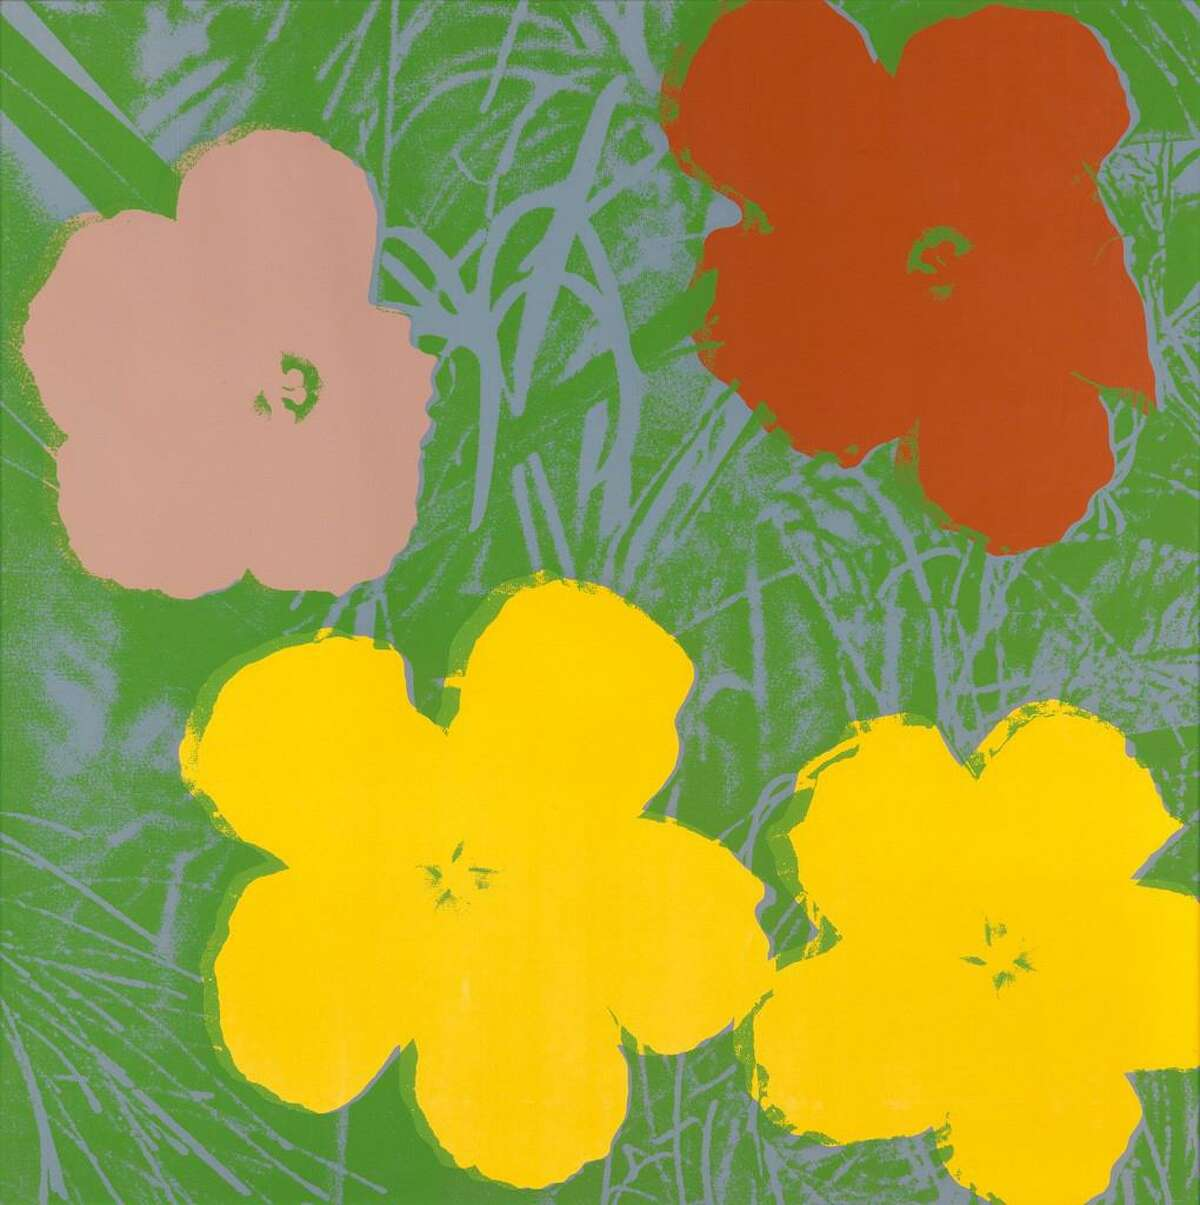 """""""Flowers,"""" by Andy Warhol, will be on display at Heather Gaudio Fine Art on Elm Street through Feb. 4, 2017 as part of Lasting Impressions, an exhibition of colorful prints, in New Canaan, Conn."""